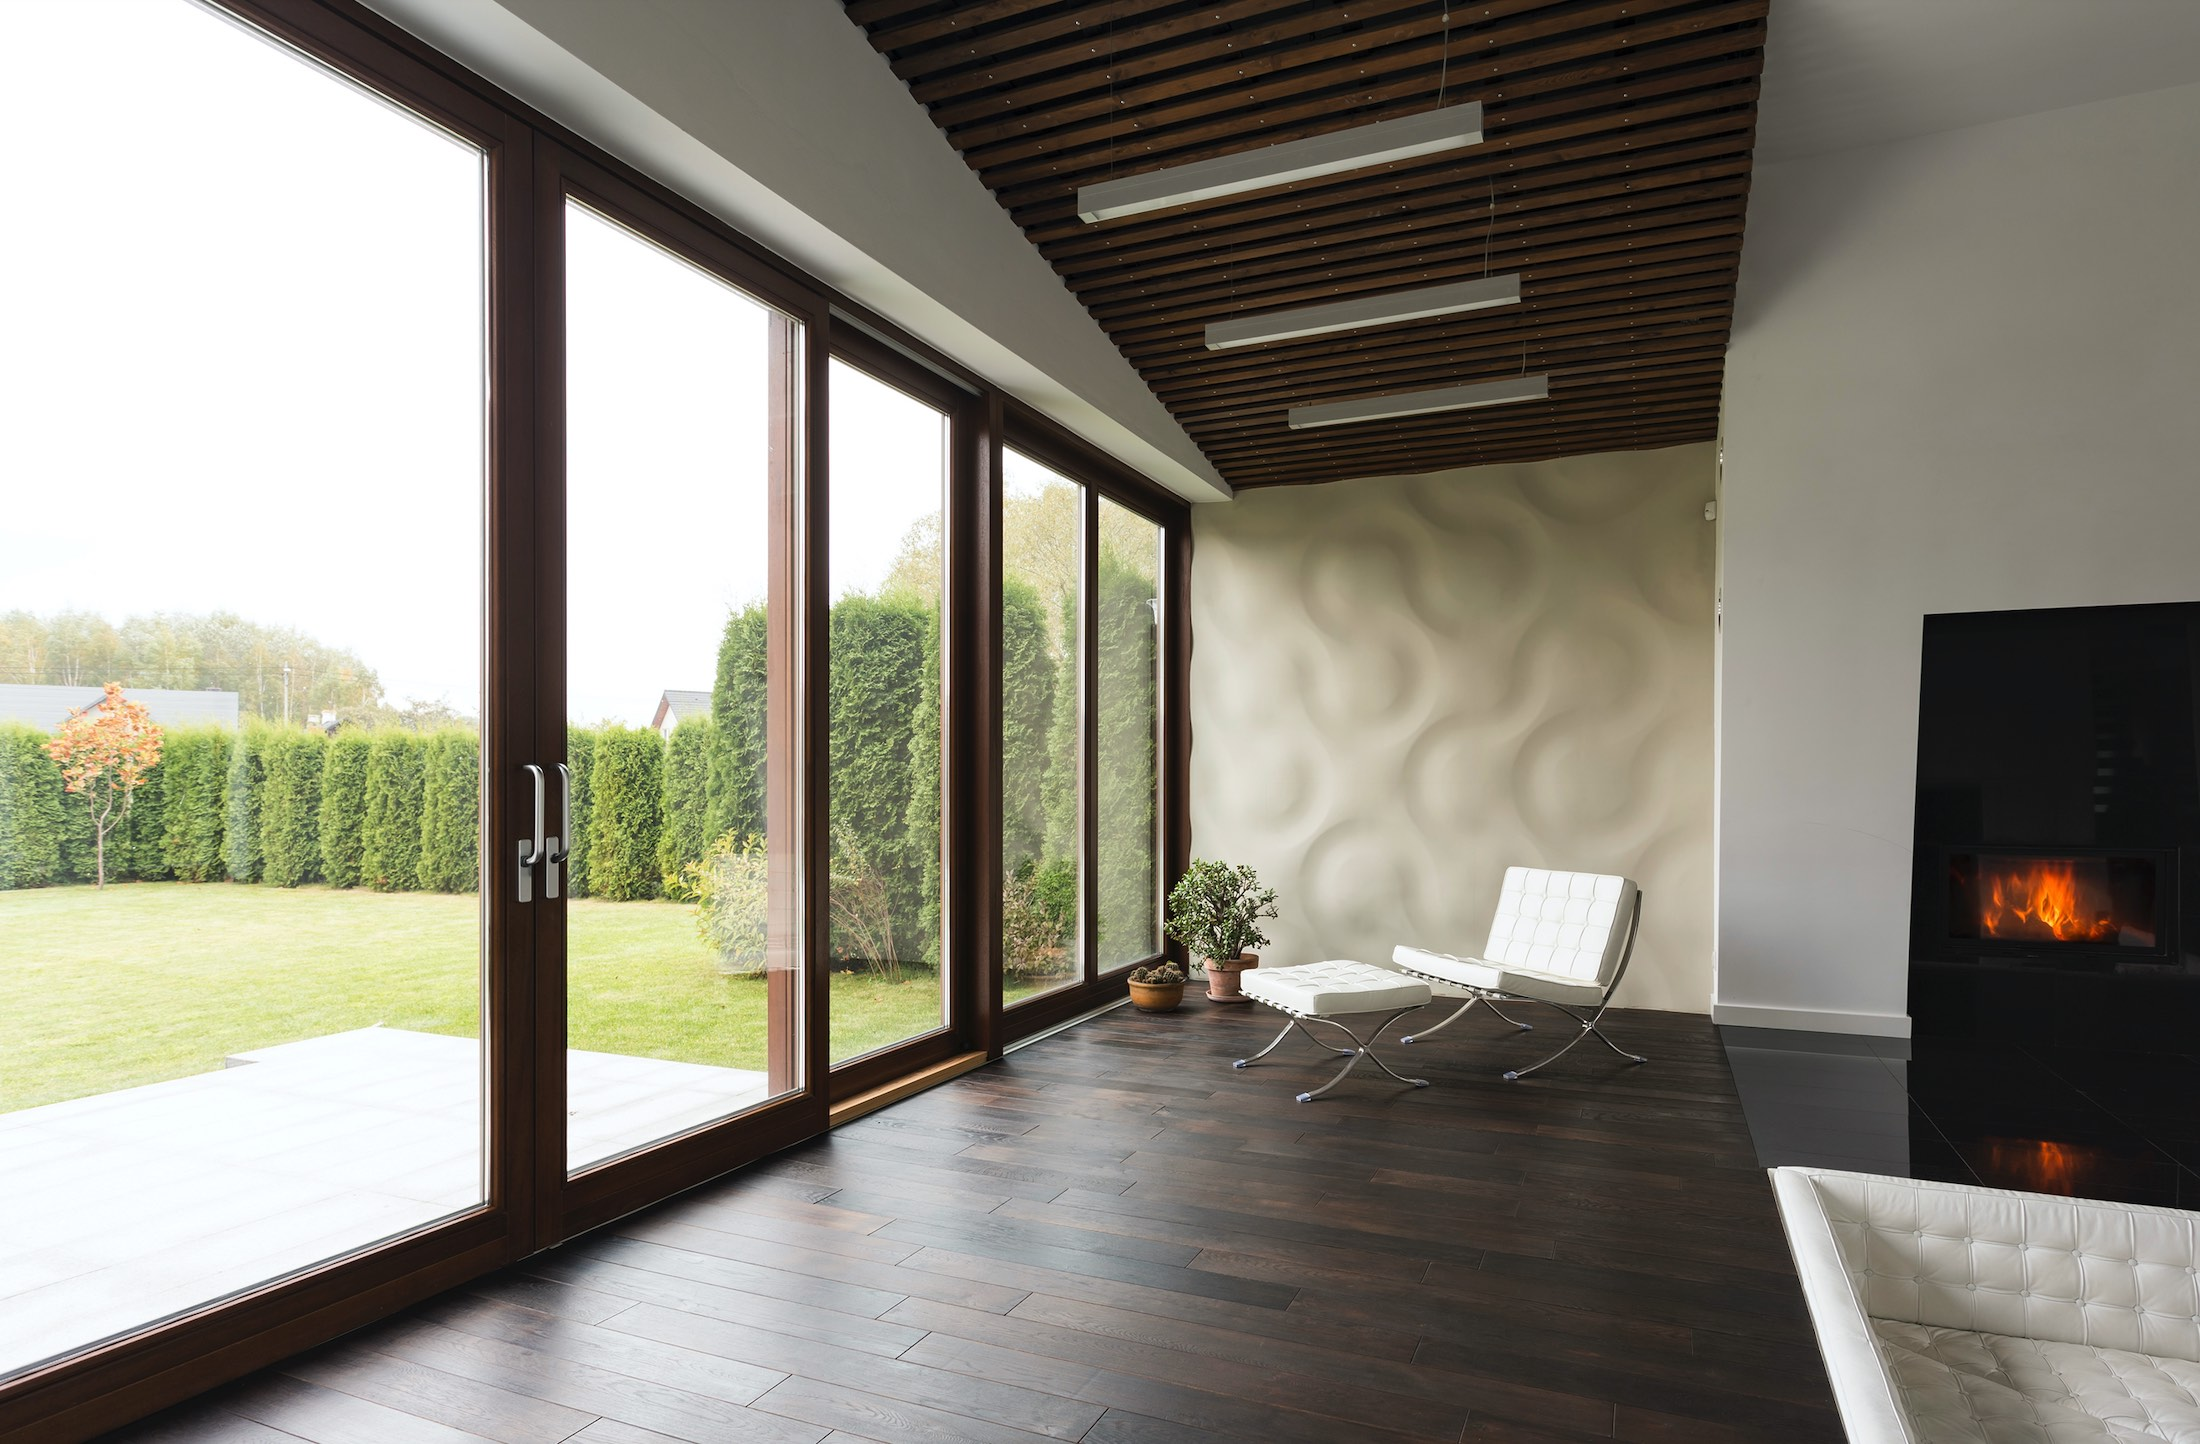 House Window Tint Useful Information And The Pros & Cons of Using It - Home Window Film in New Orleans, Louisiana